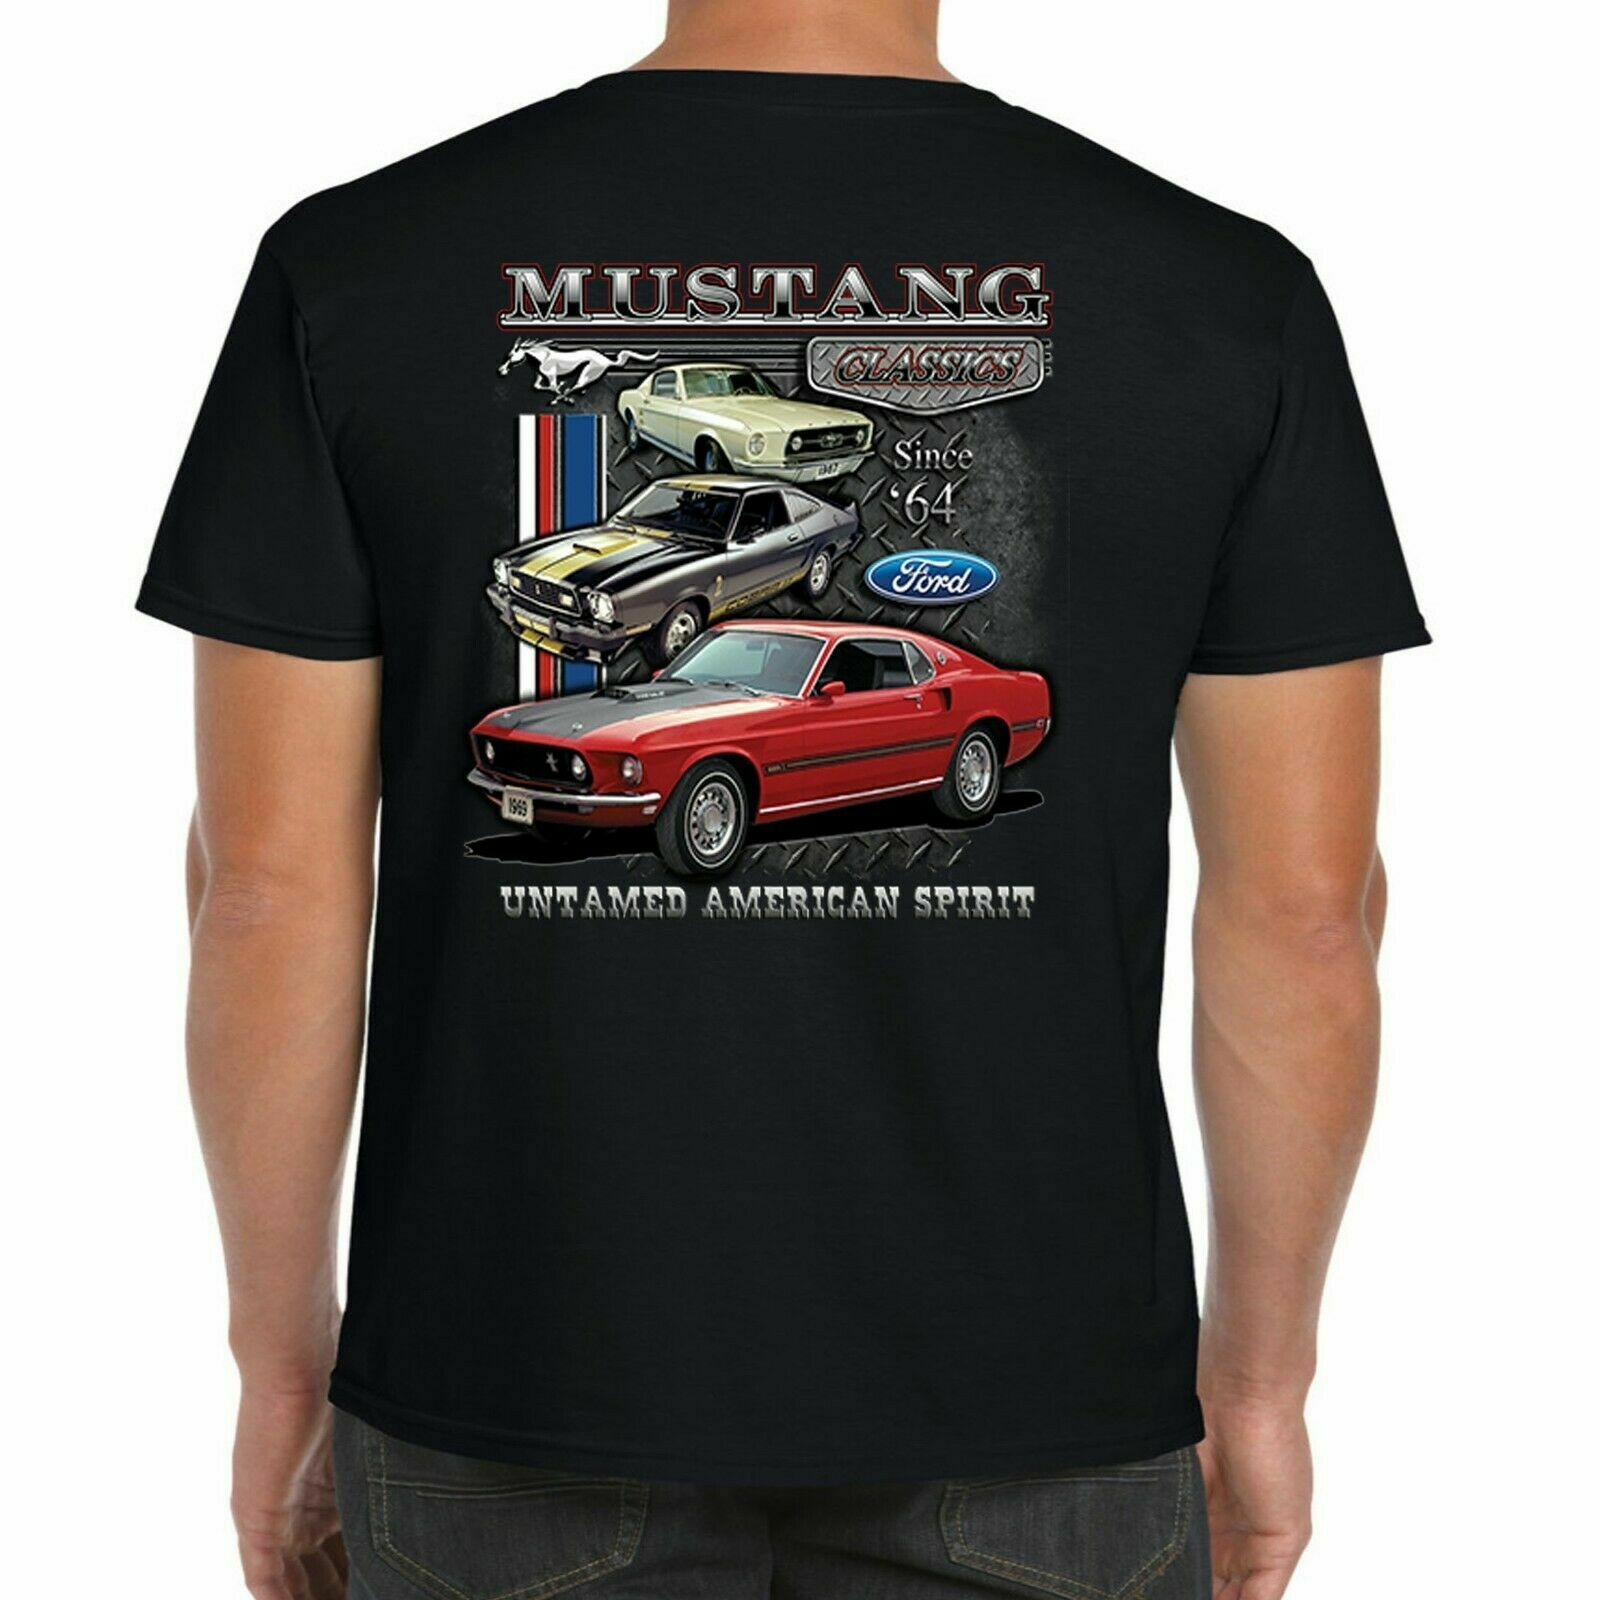 2011 Ford Mustang American Muscle Car Classic Design Tshirt NEW